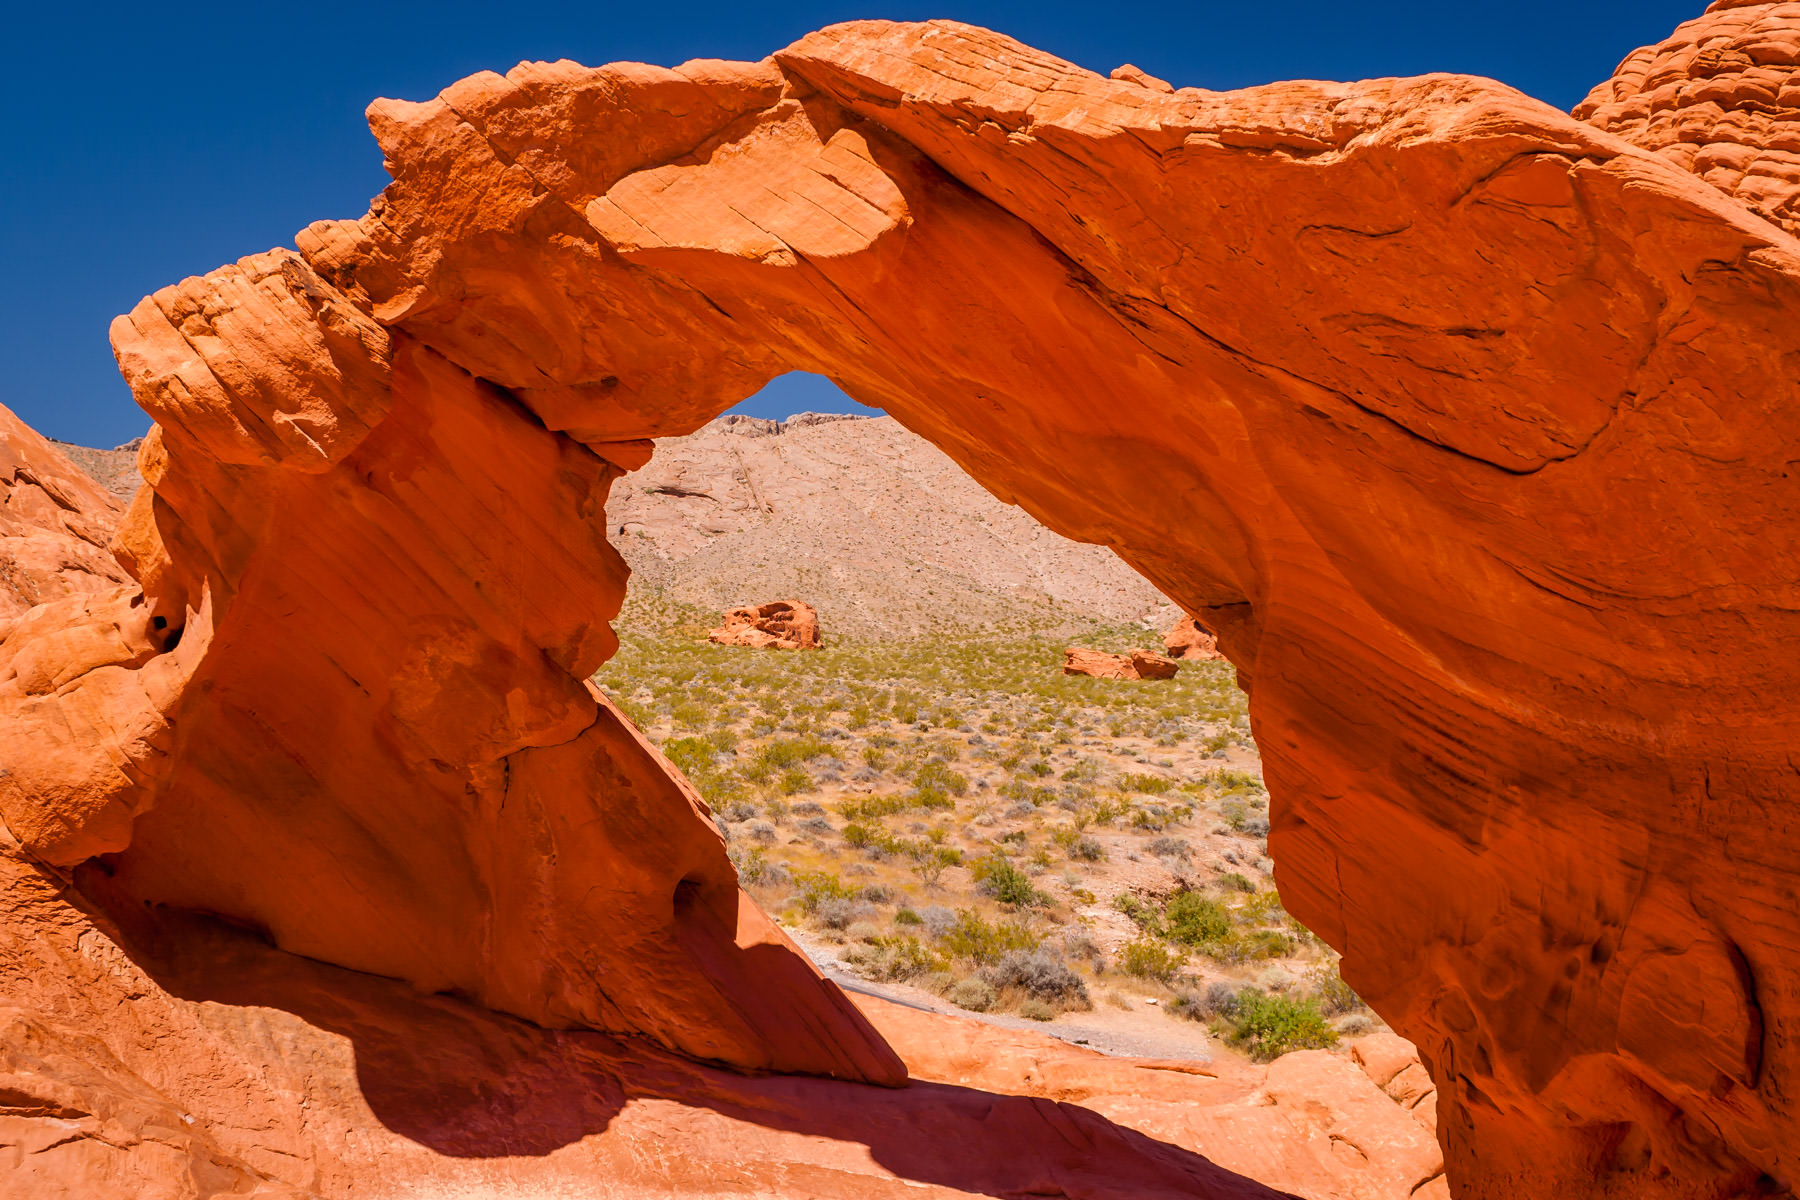 A stone arch at Nevada's Valley of Fire State Park.